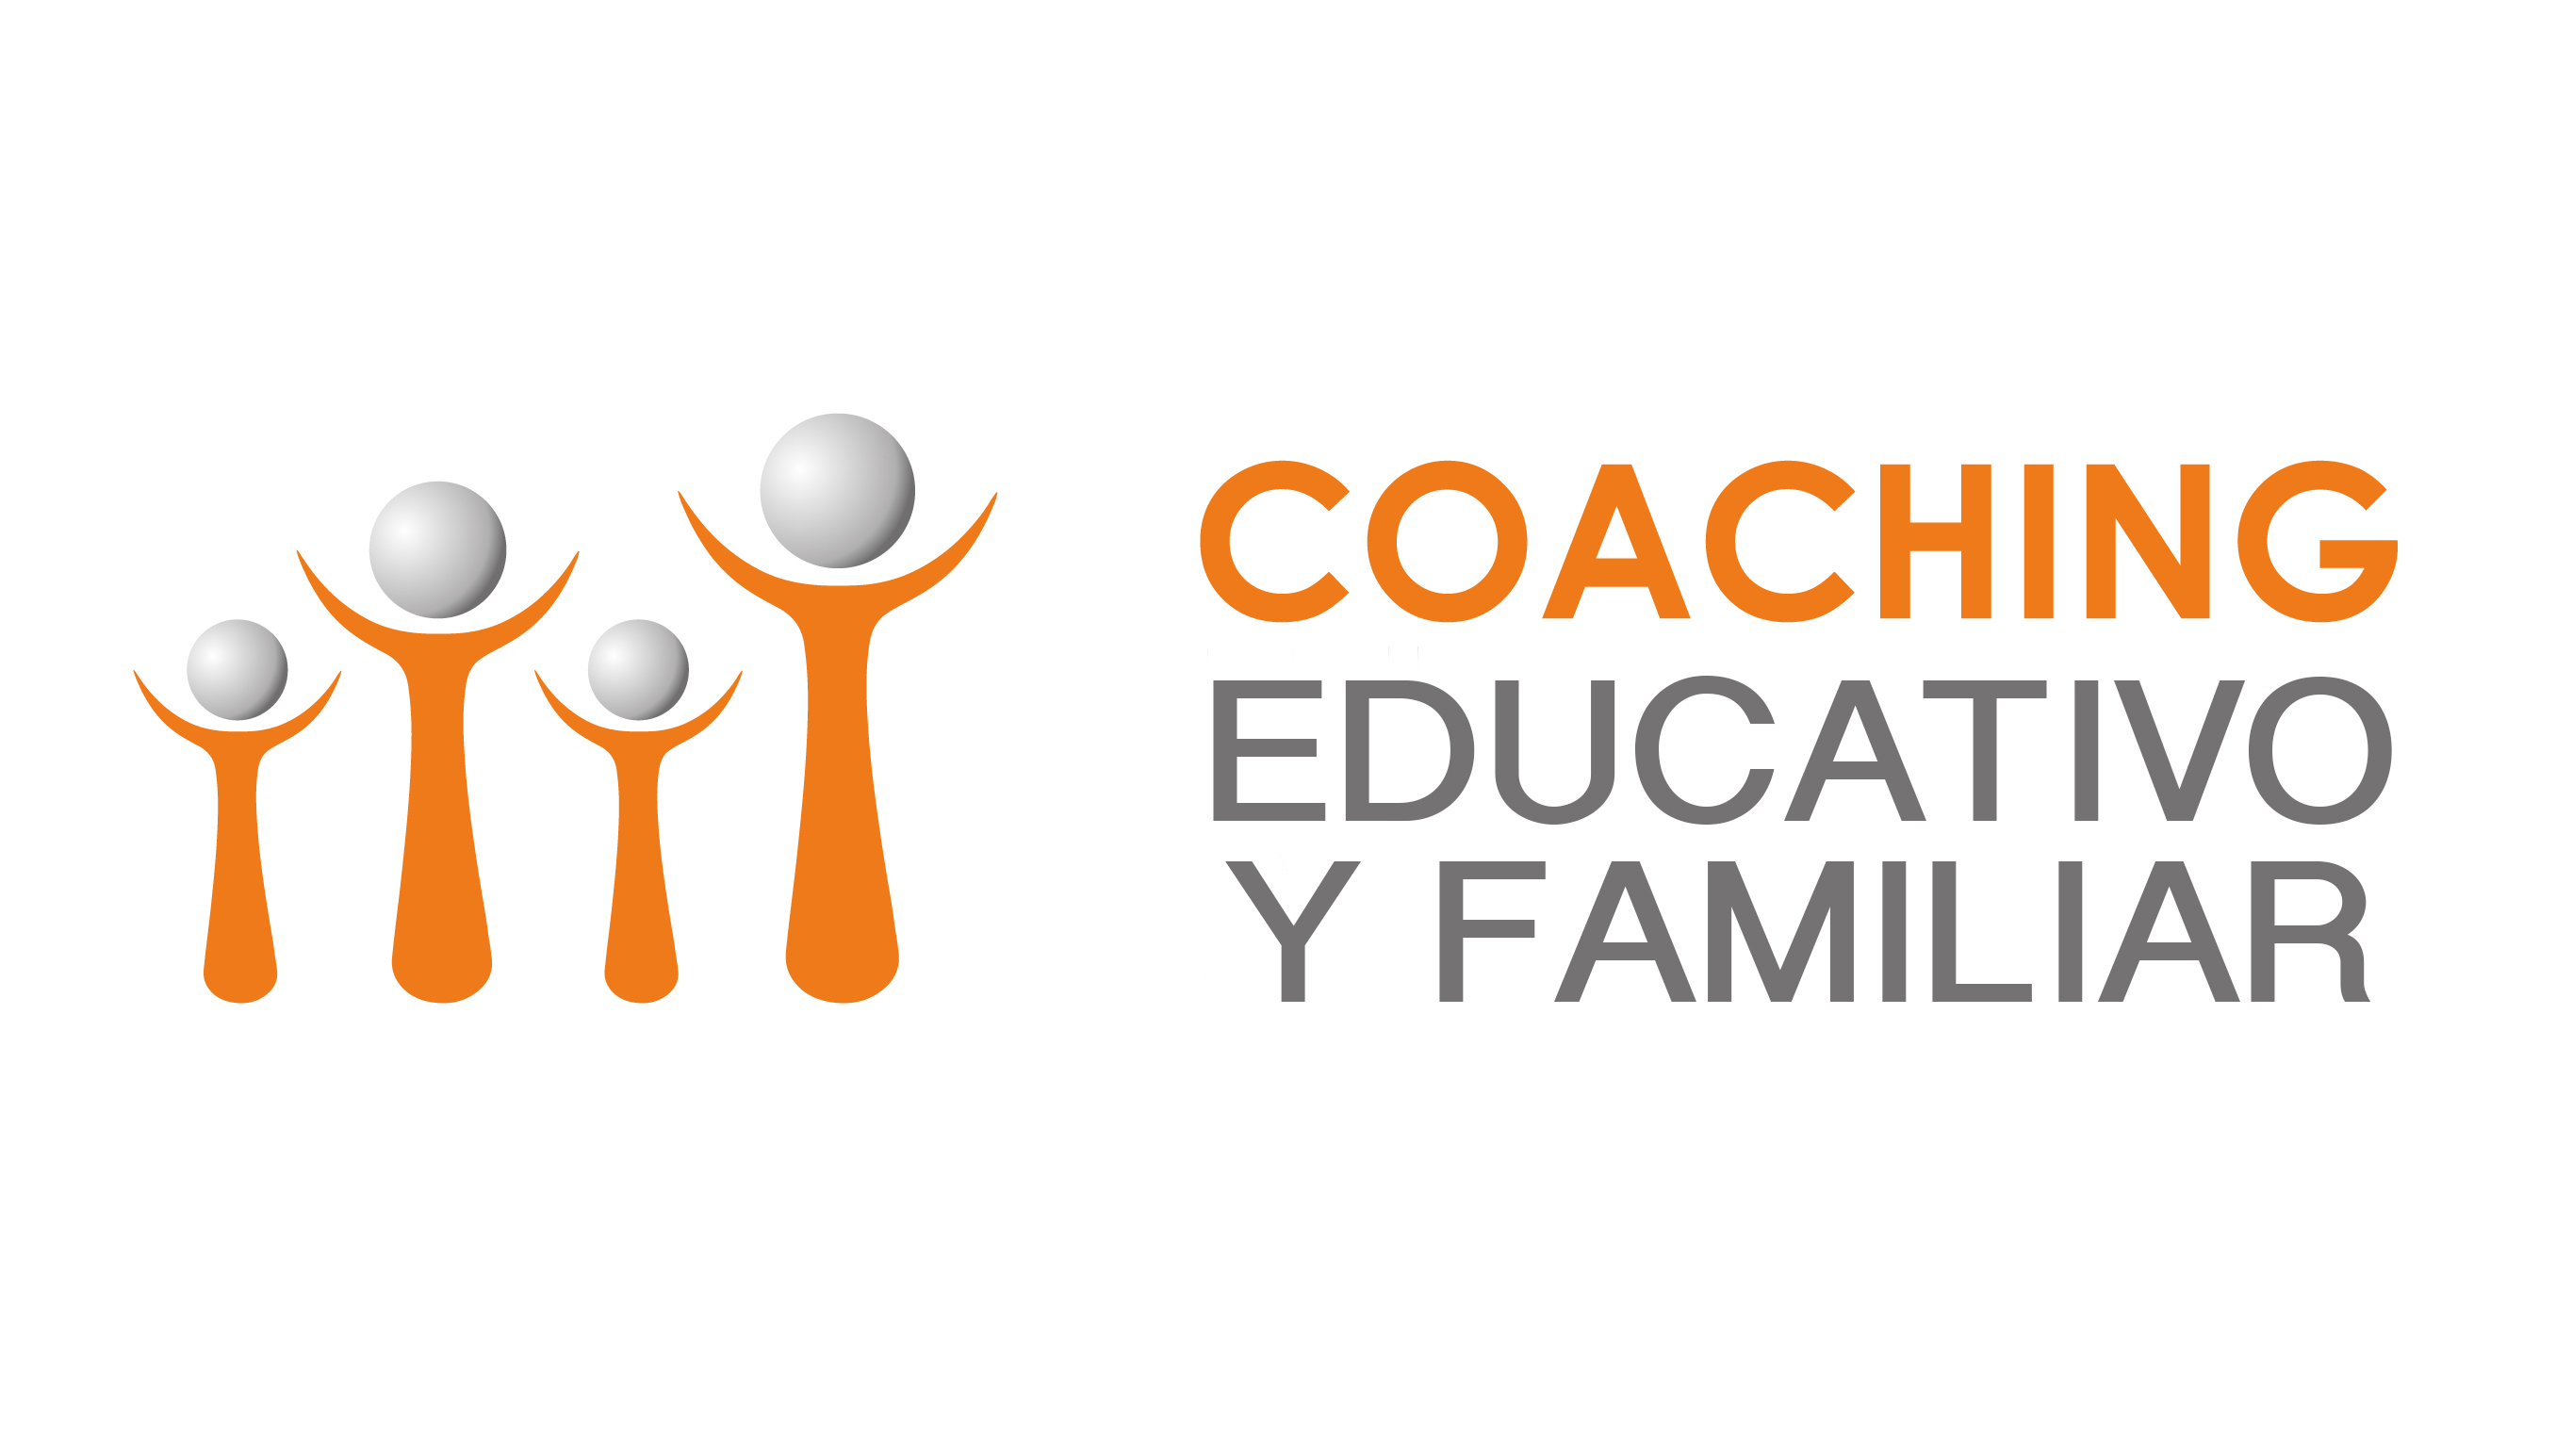 Coaching Educativo y Familiar @ ECOI CÁDIZ (Jeréz de la Frontera y ONLINE